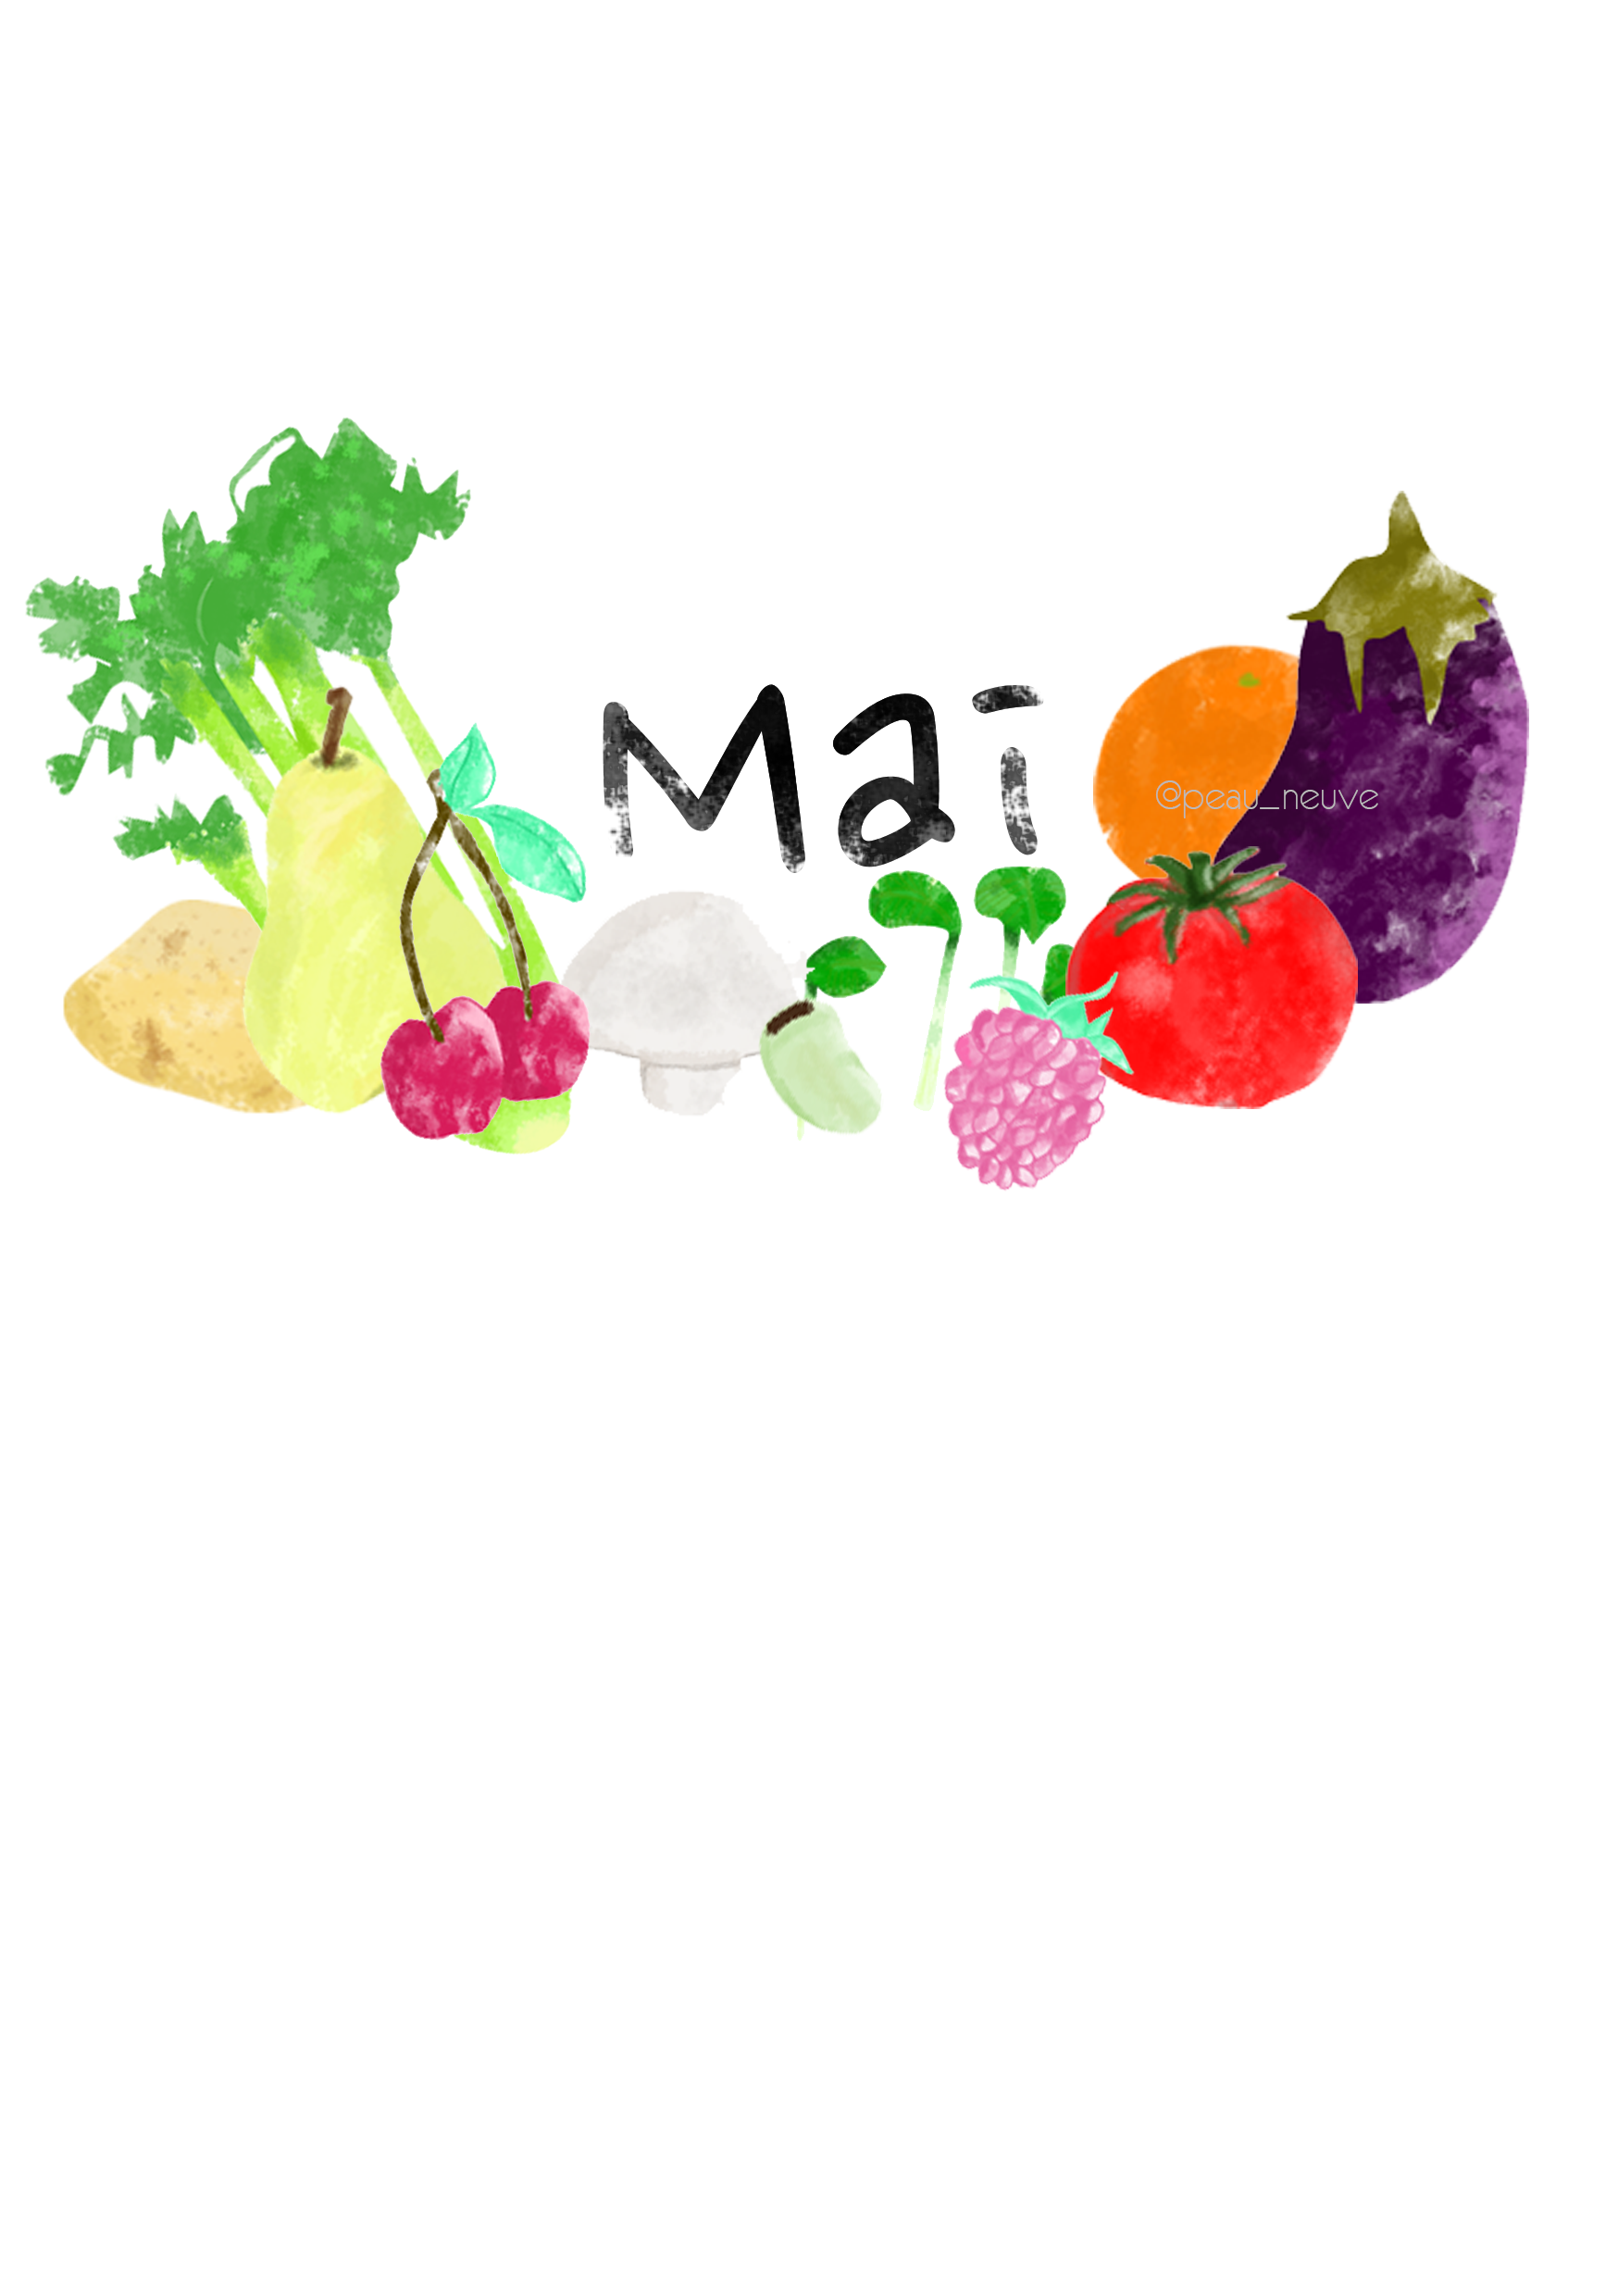 Le mois MAI - illustration - printable